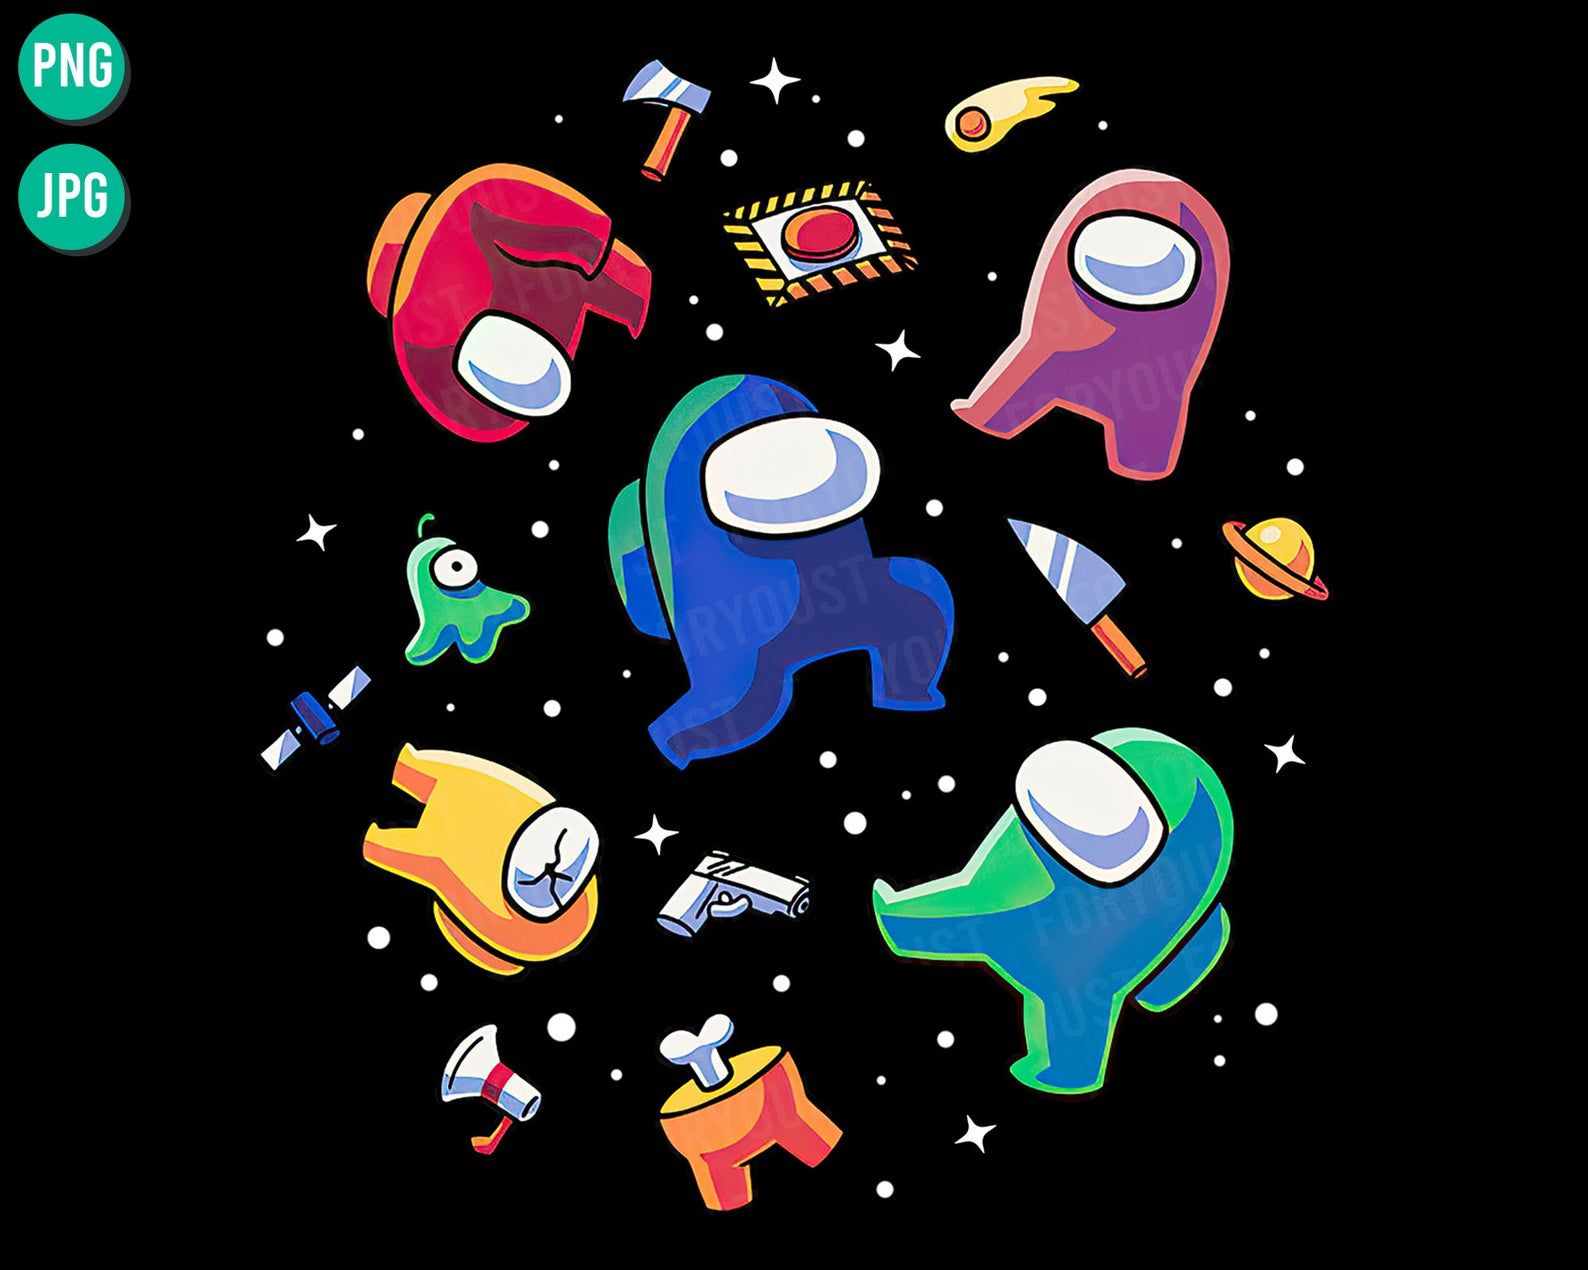 Impostors In Space Png Download Among Us Video Game Galaxy Finding Impostor Among Us Inspired Funny Gift For Gamer Digital Download In 2021 Gaming Wall Art Drawing Clipart Doodle Wall